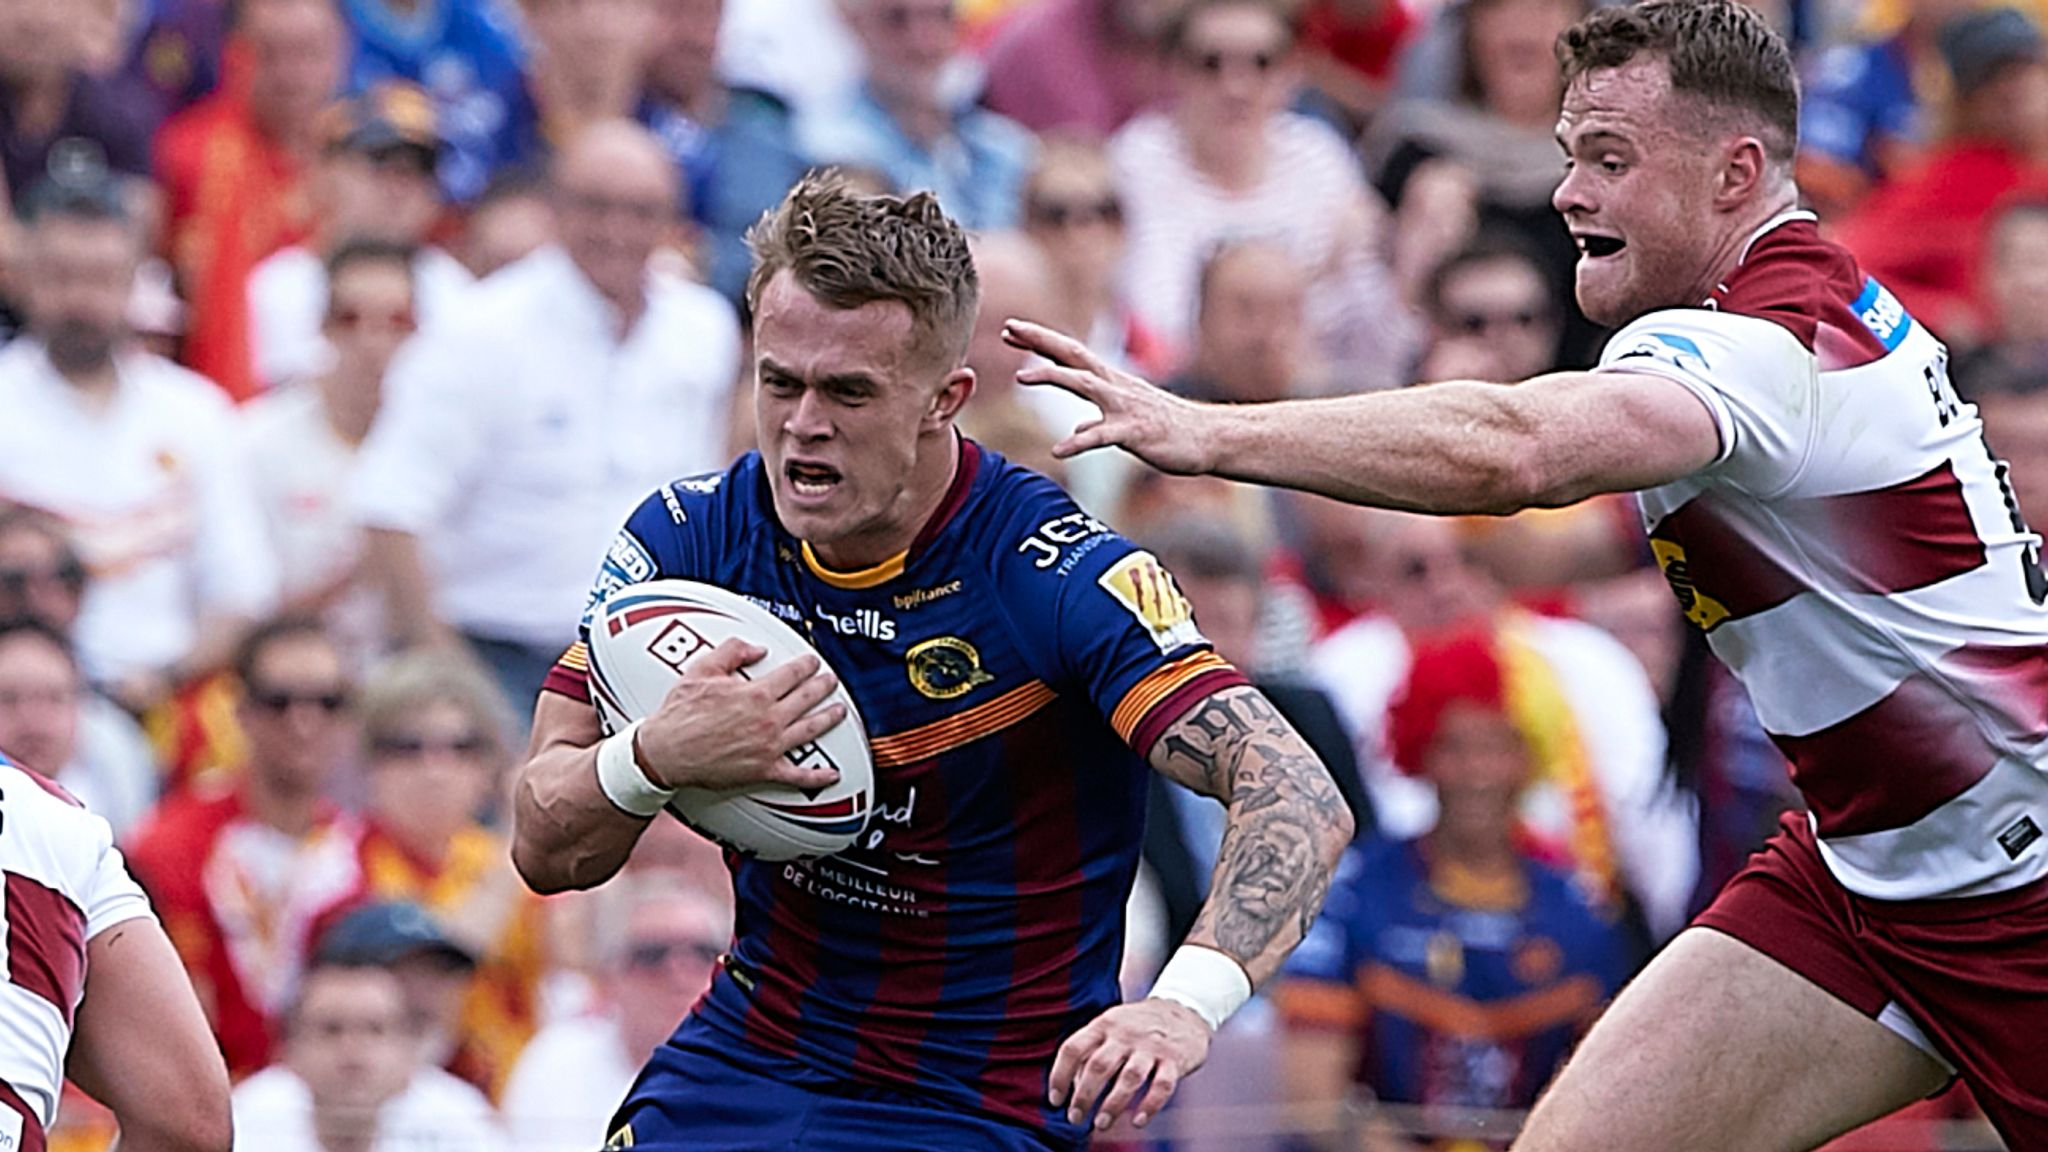 Catalans Dragons winger Lewis Tierney to miss start of season